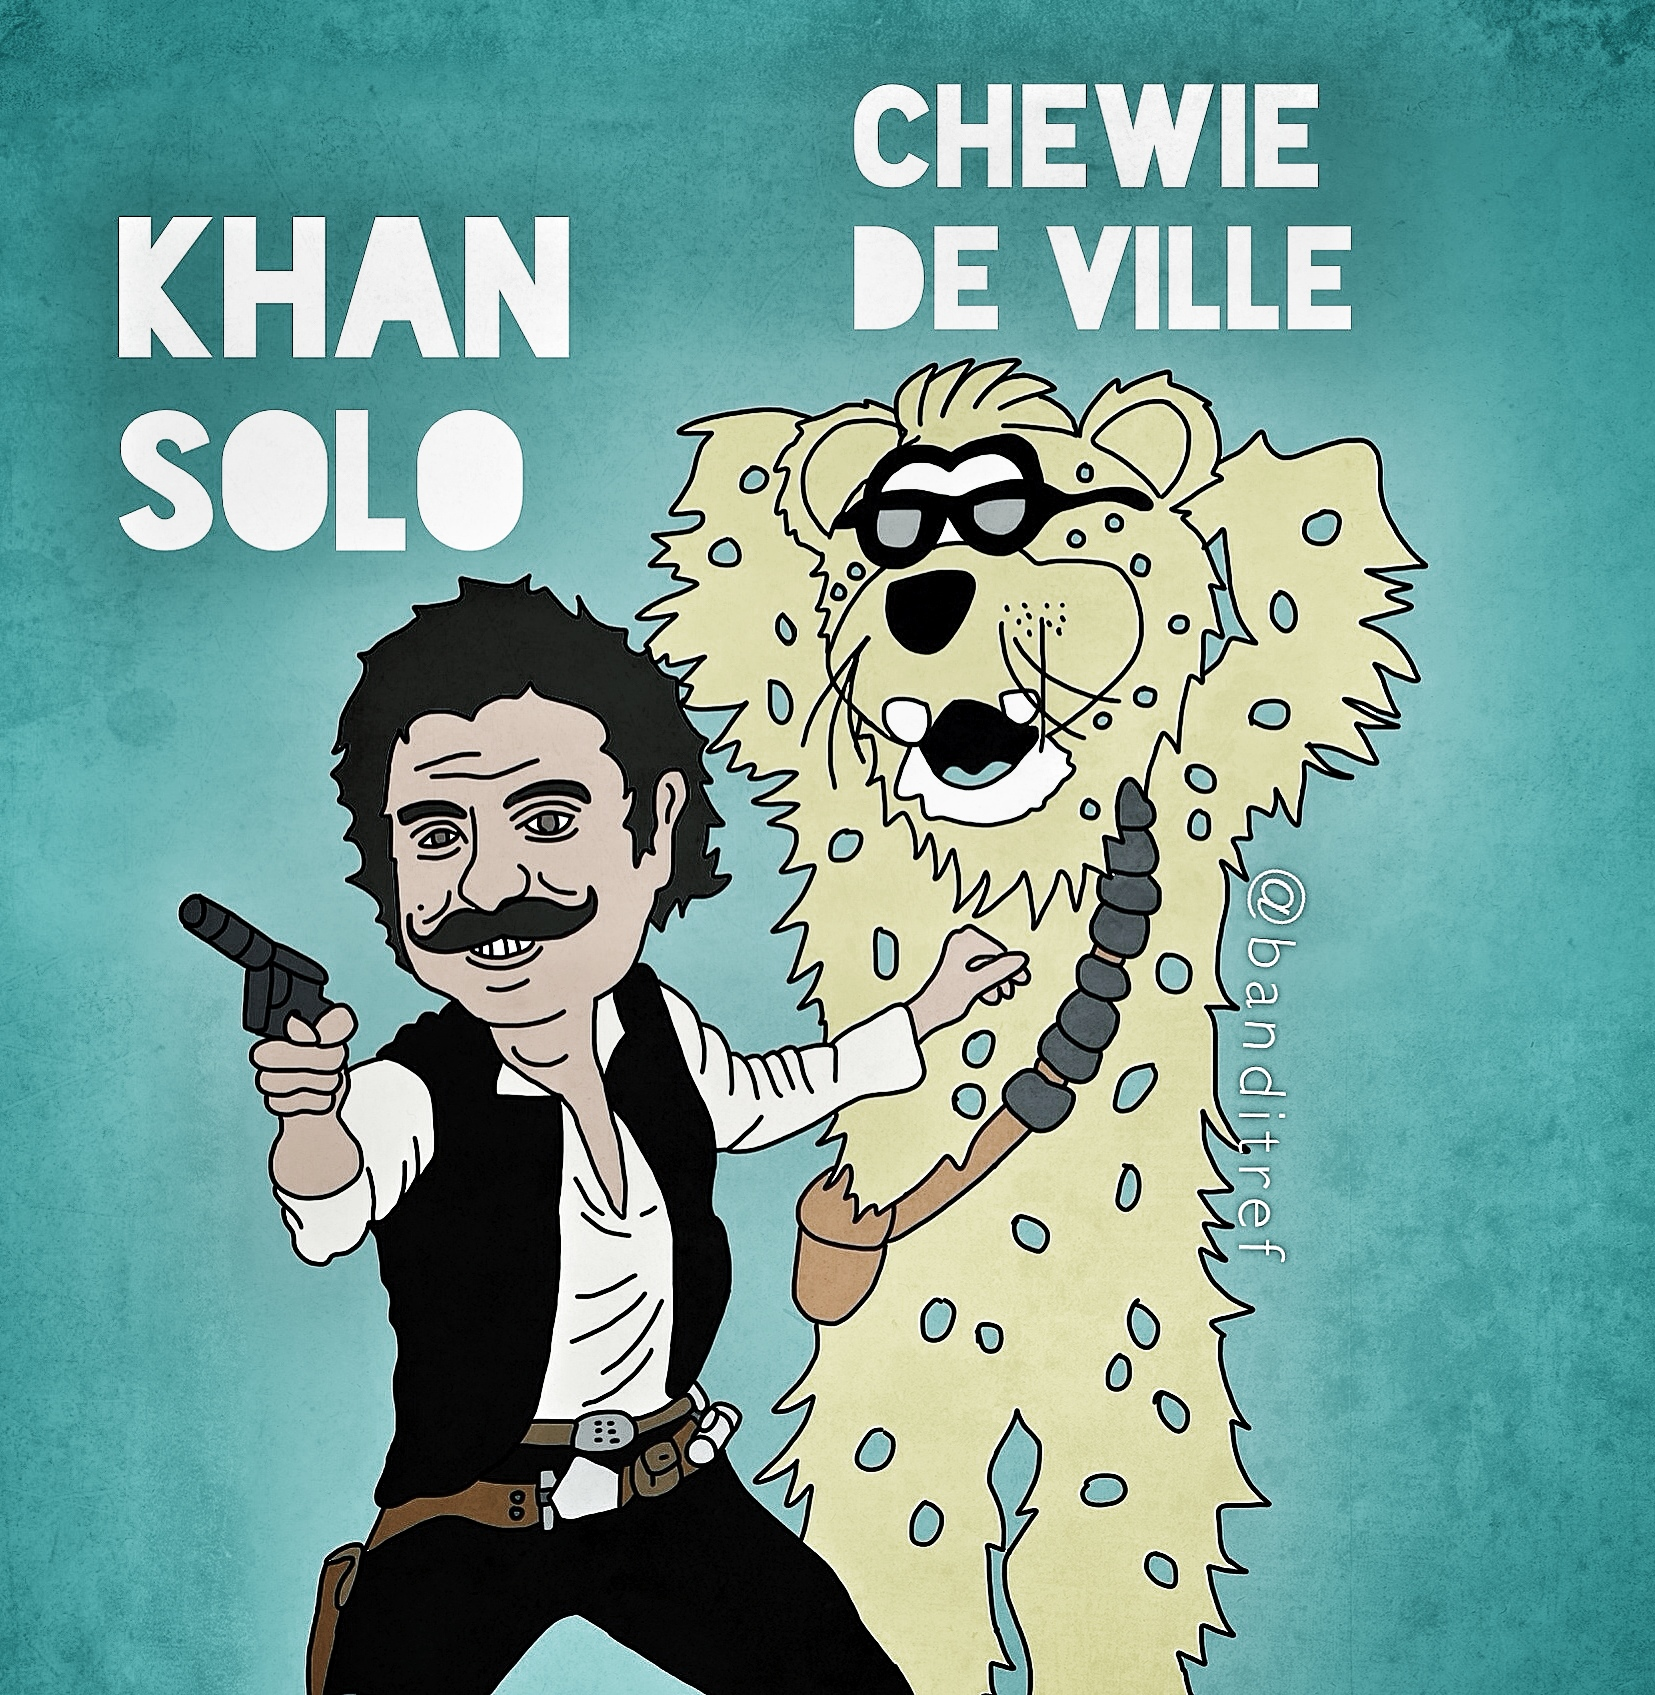 Khan-Solo-and-Chewie-De-Ville